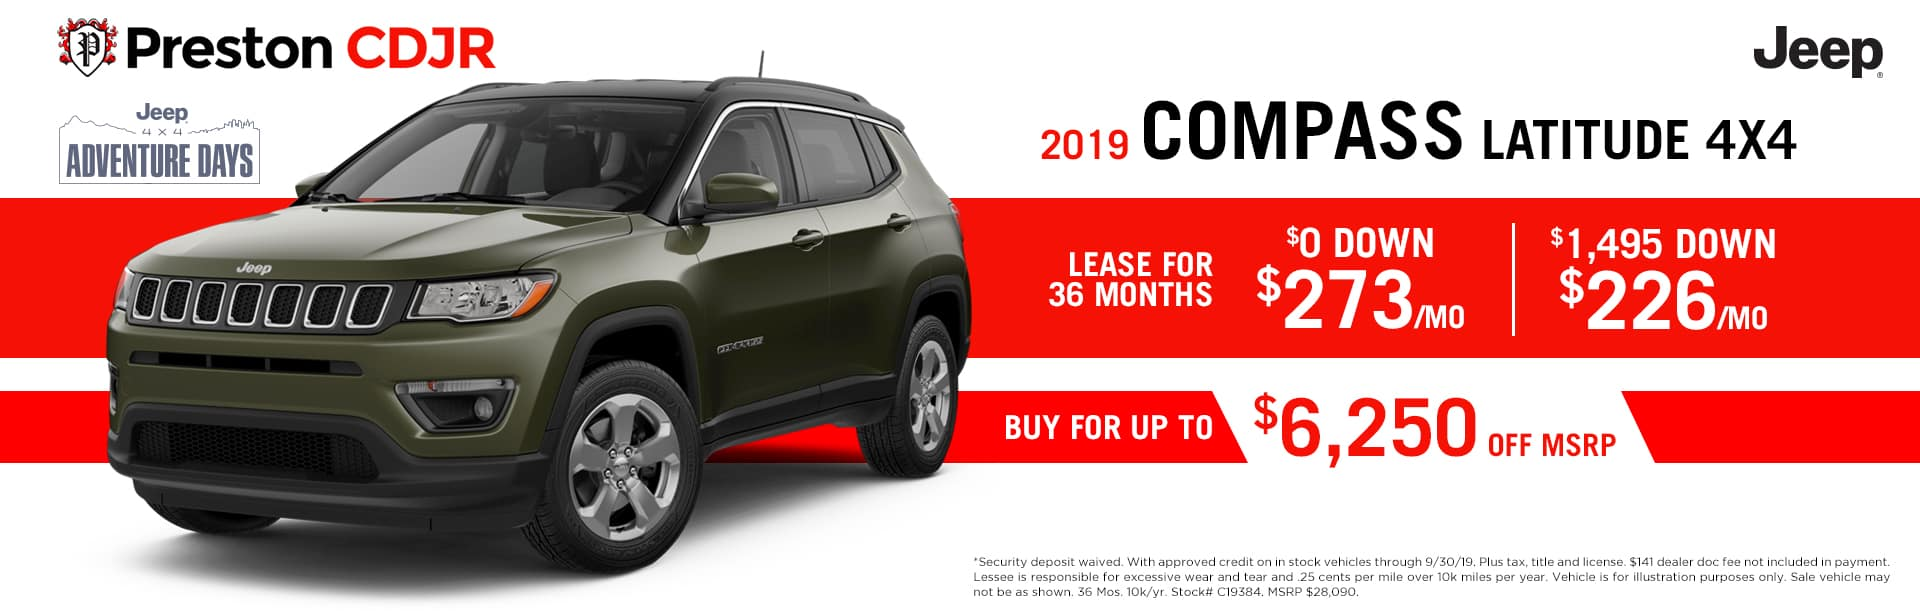 September special on the 2019 Jeep Compass